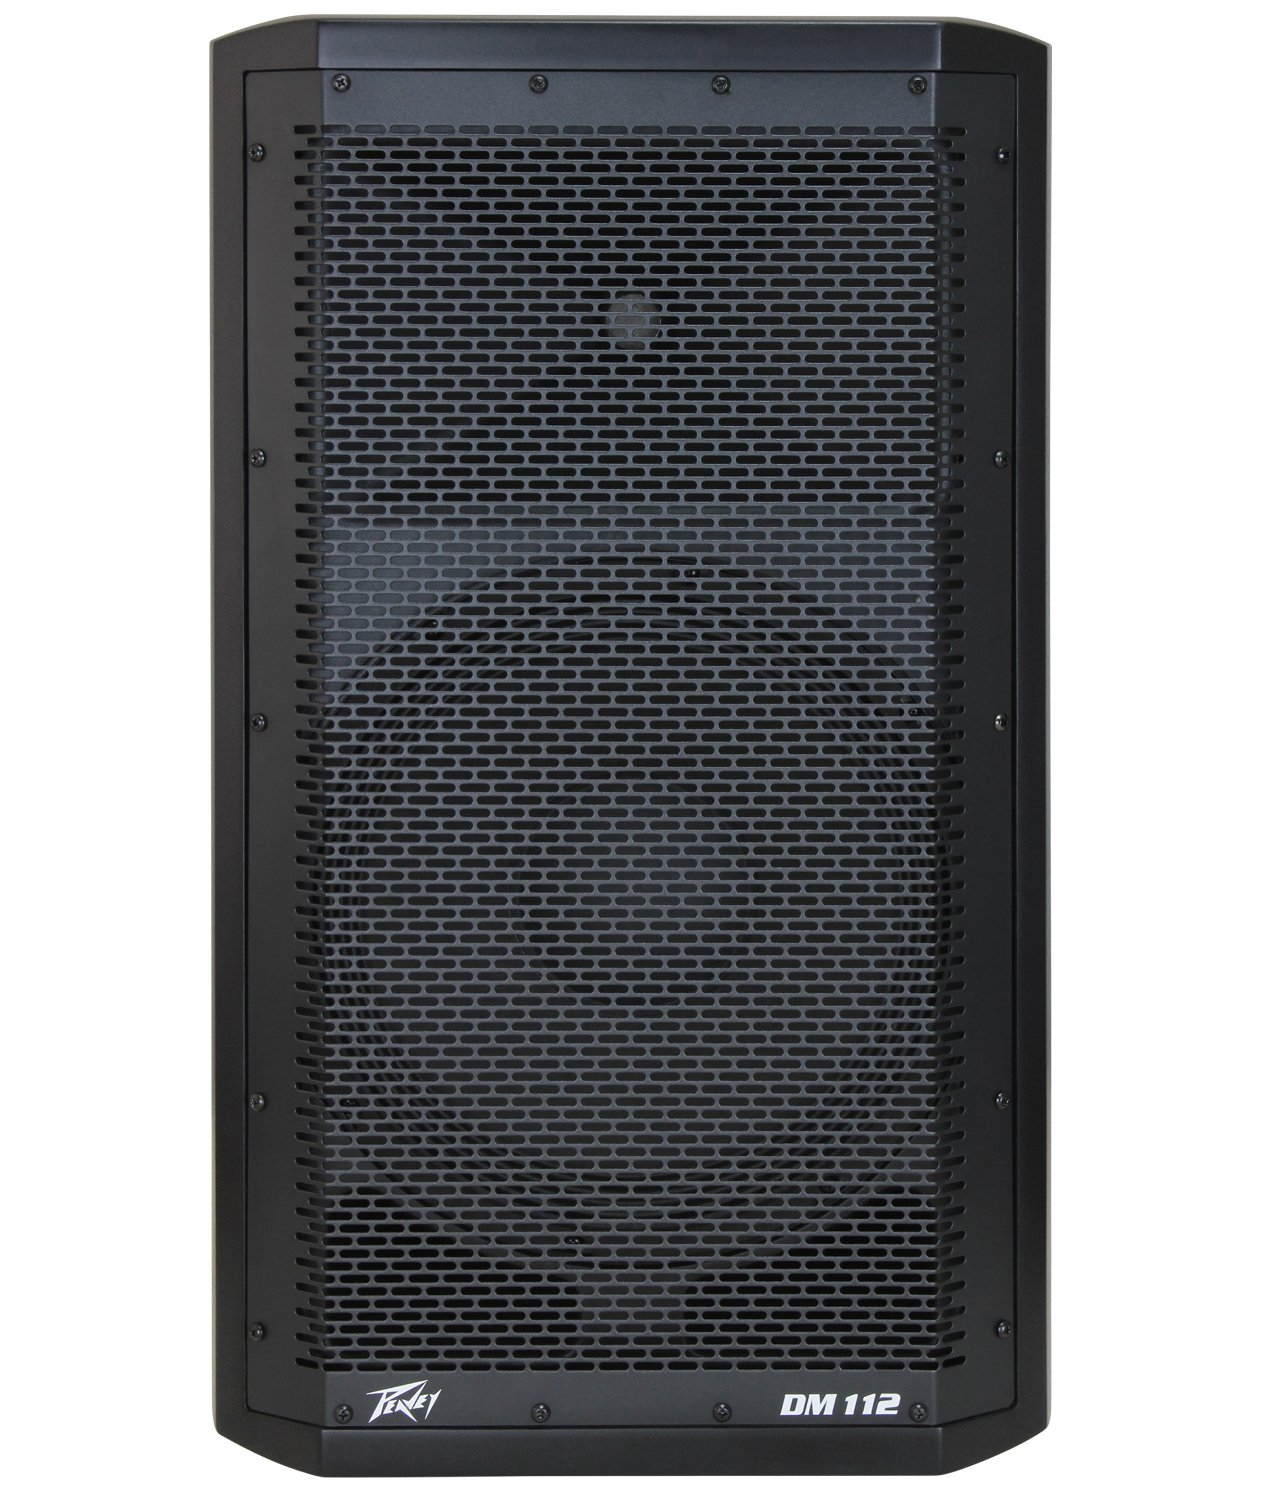 Peavey Dark Matter DM 112 1000 Watt Powered Speaker